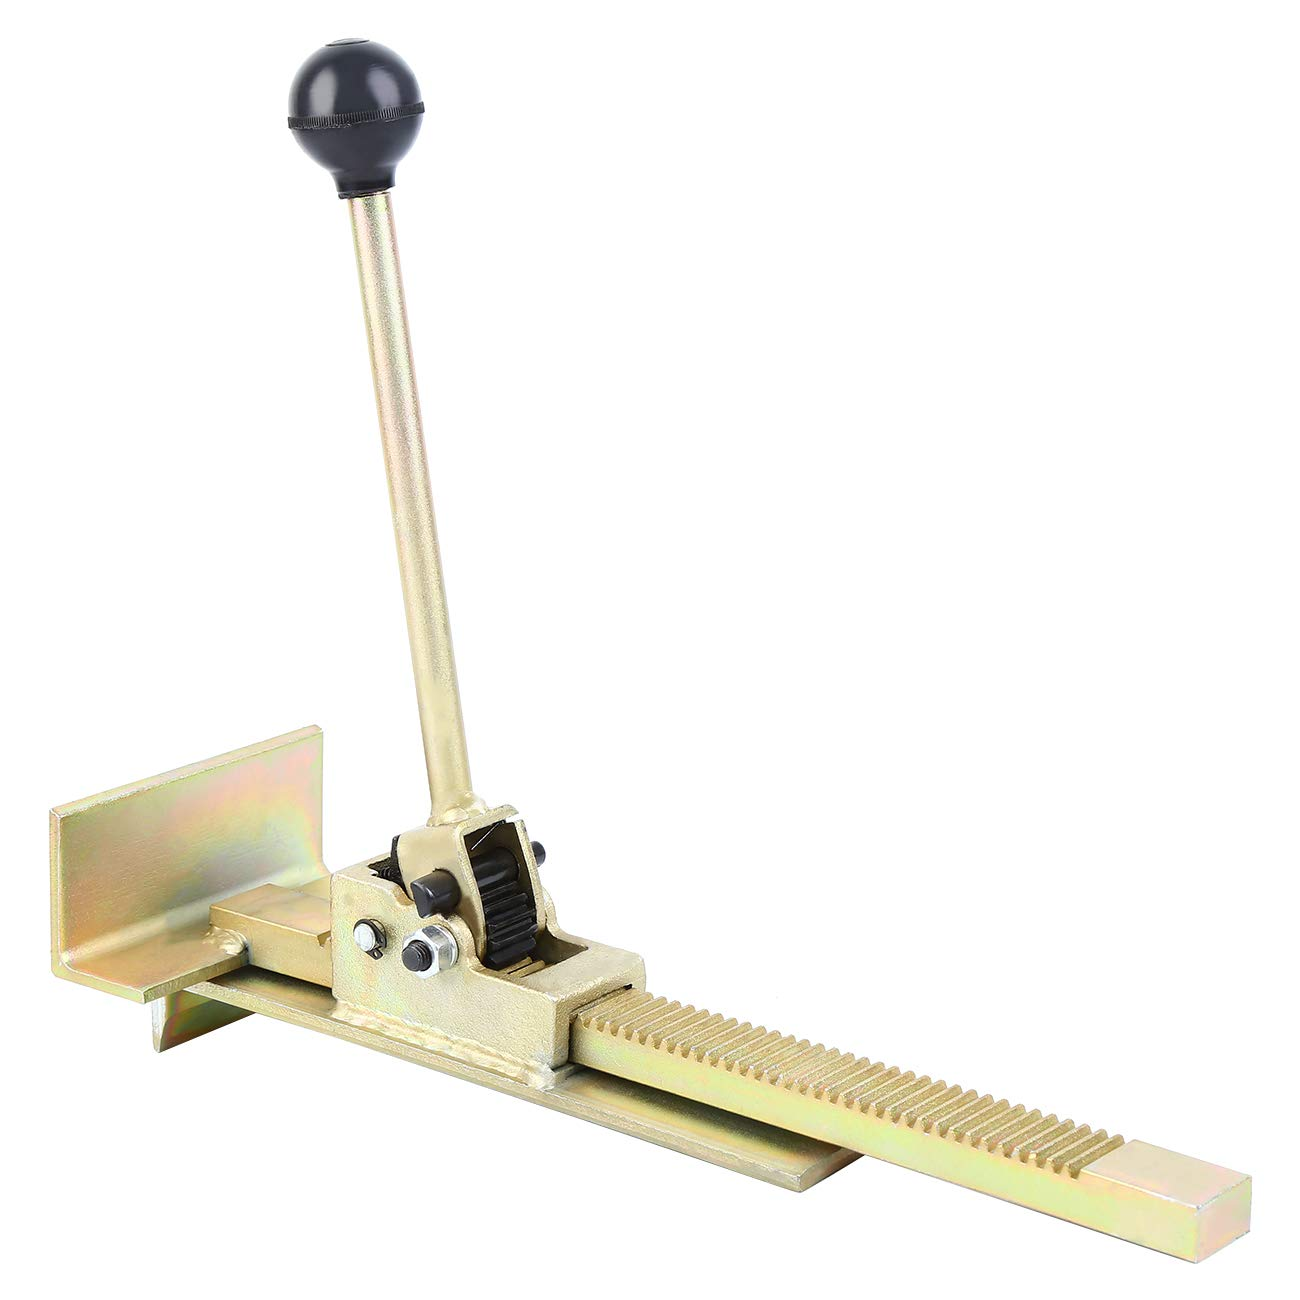 TryE Professional Flooring Jack Install Hard Wood Straight Tile Contractor Hand Tool by TryE